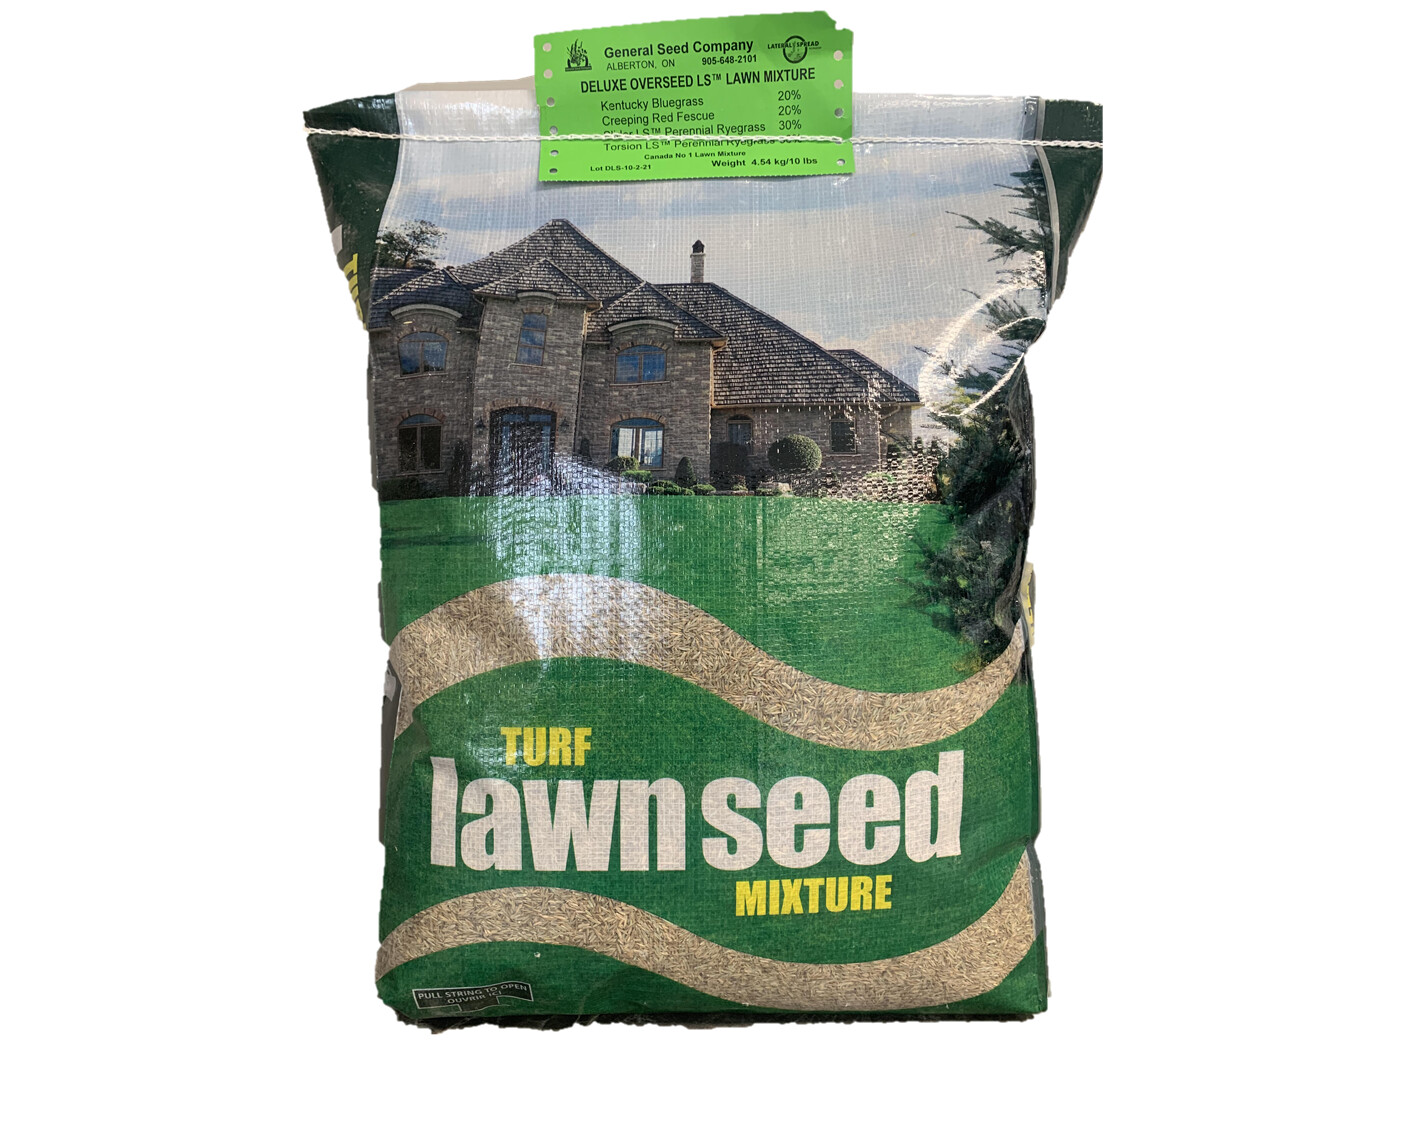 DELUXE OVERSEED LS GRASS SEED - 10LB BAG